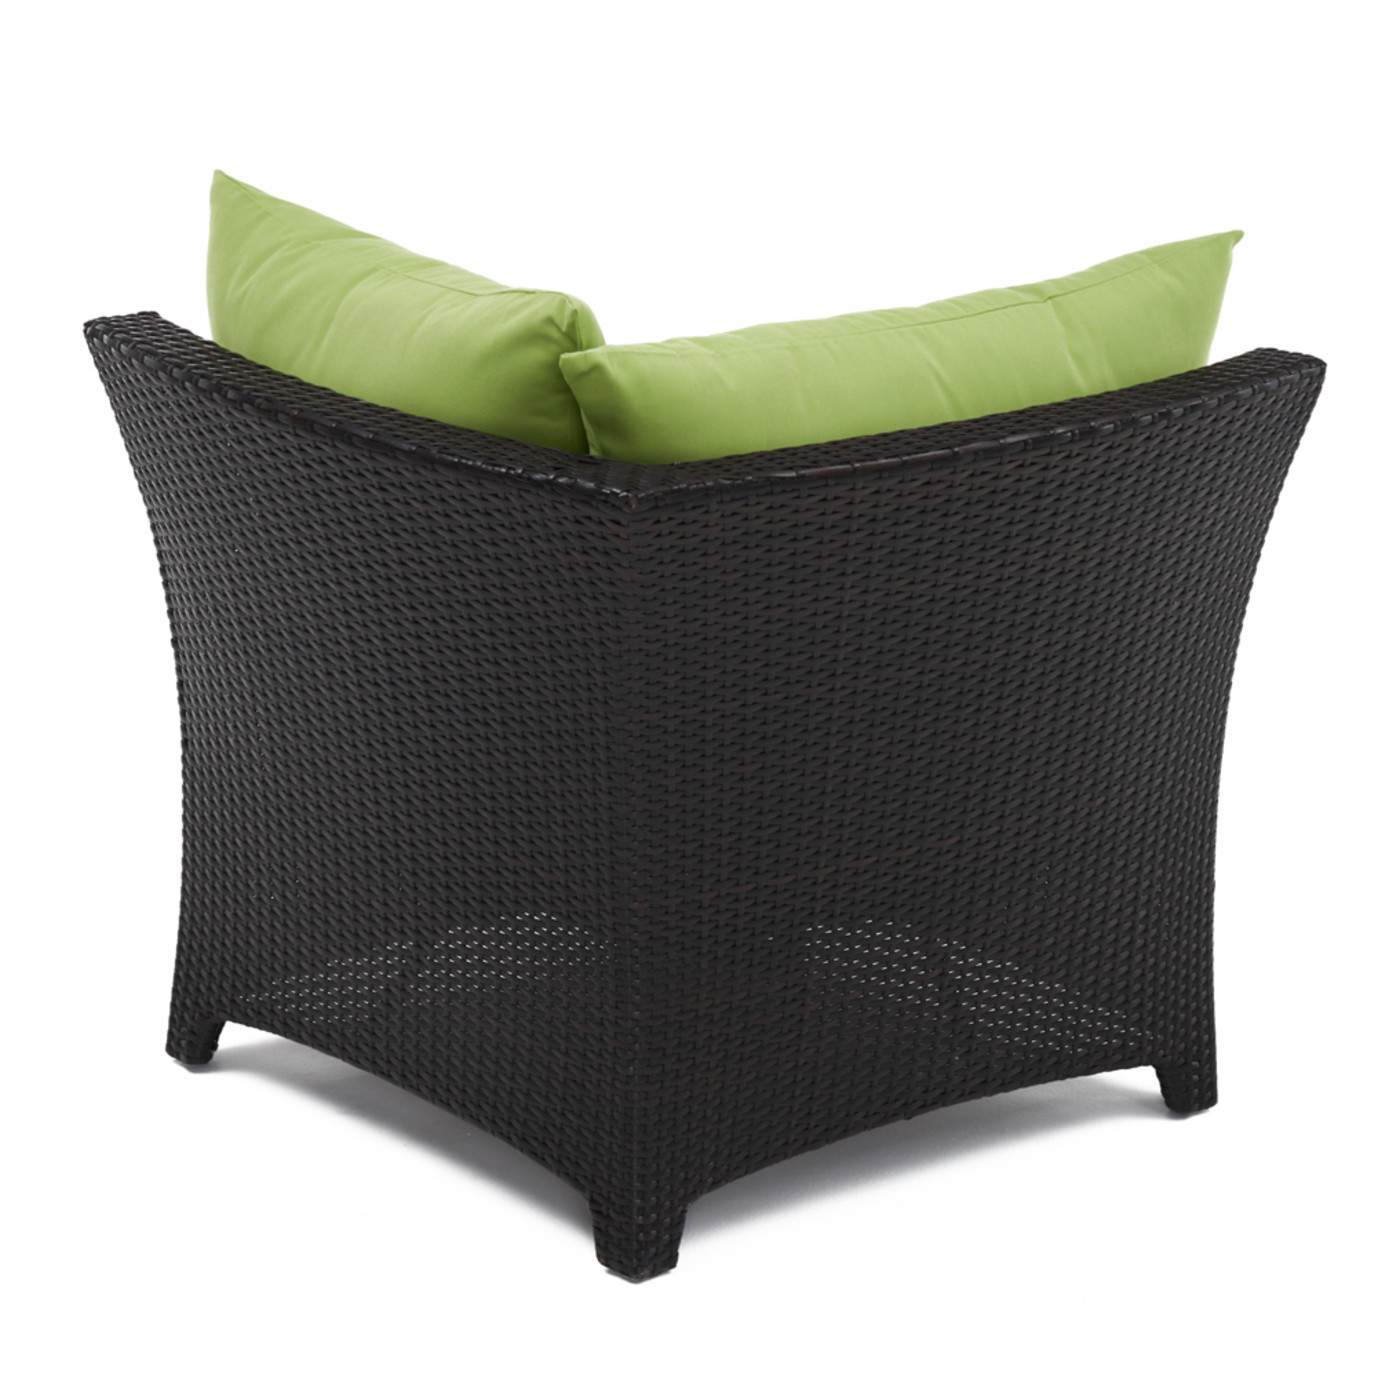 Deco™ 6pc Sectional and Table - Ginkgo Green